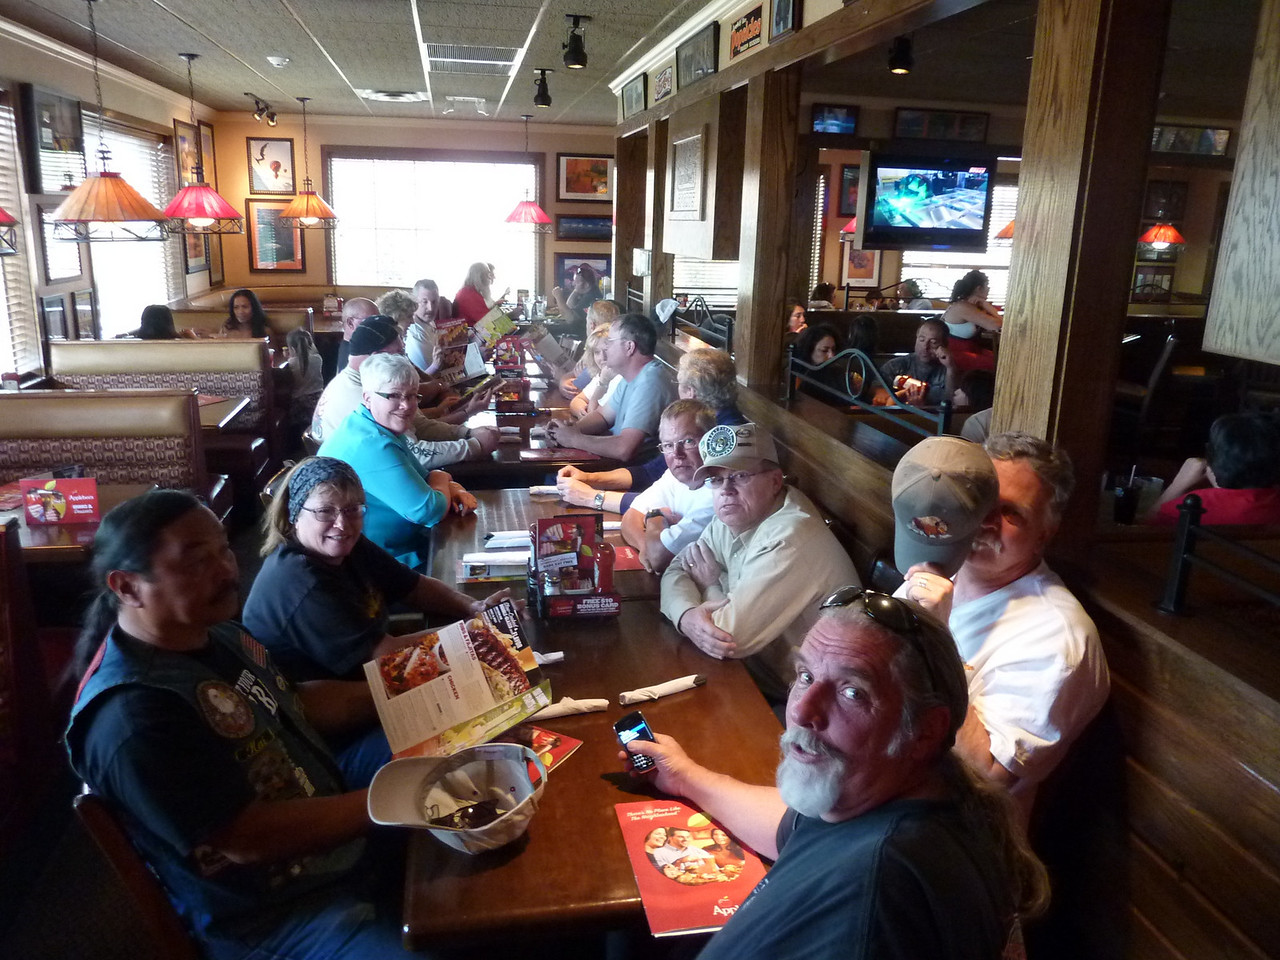 Lunch at Applebee's